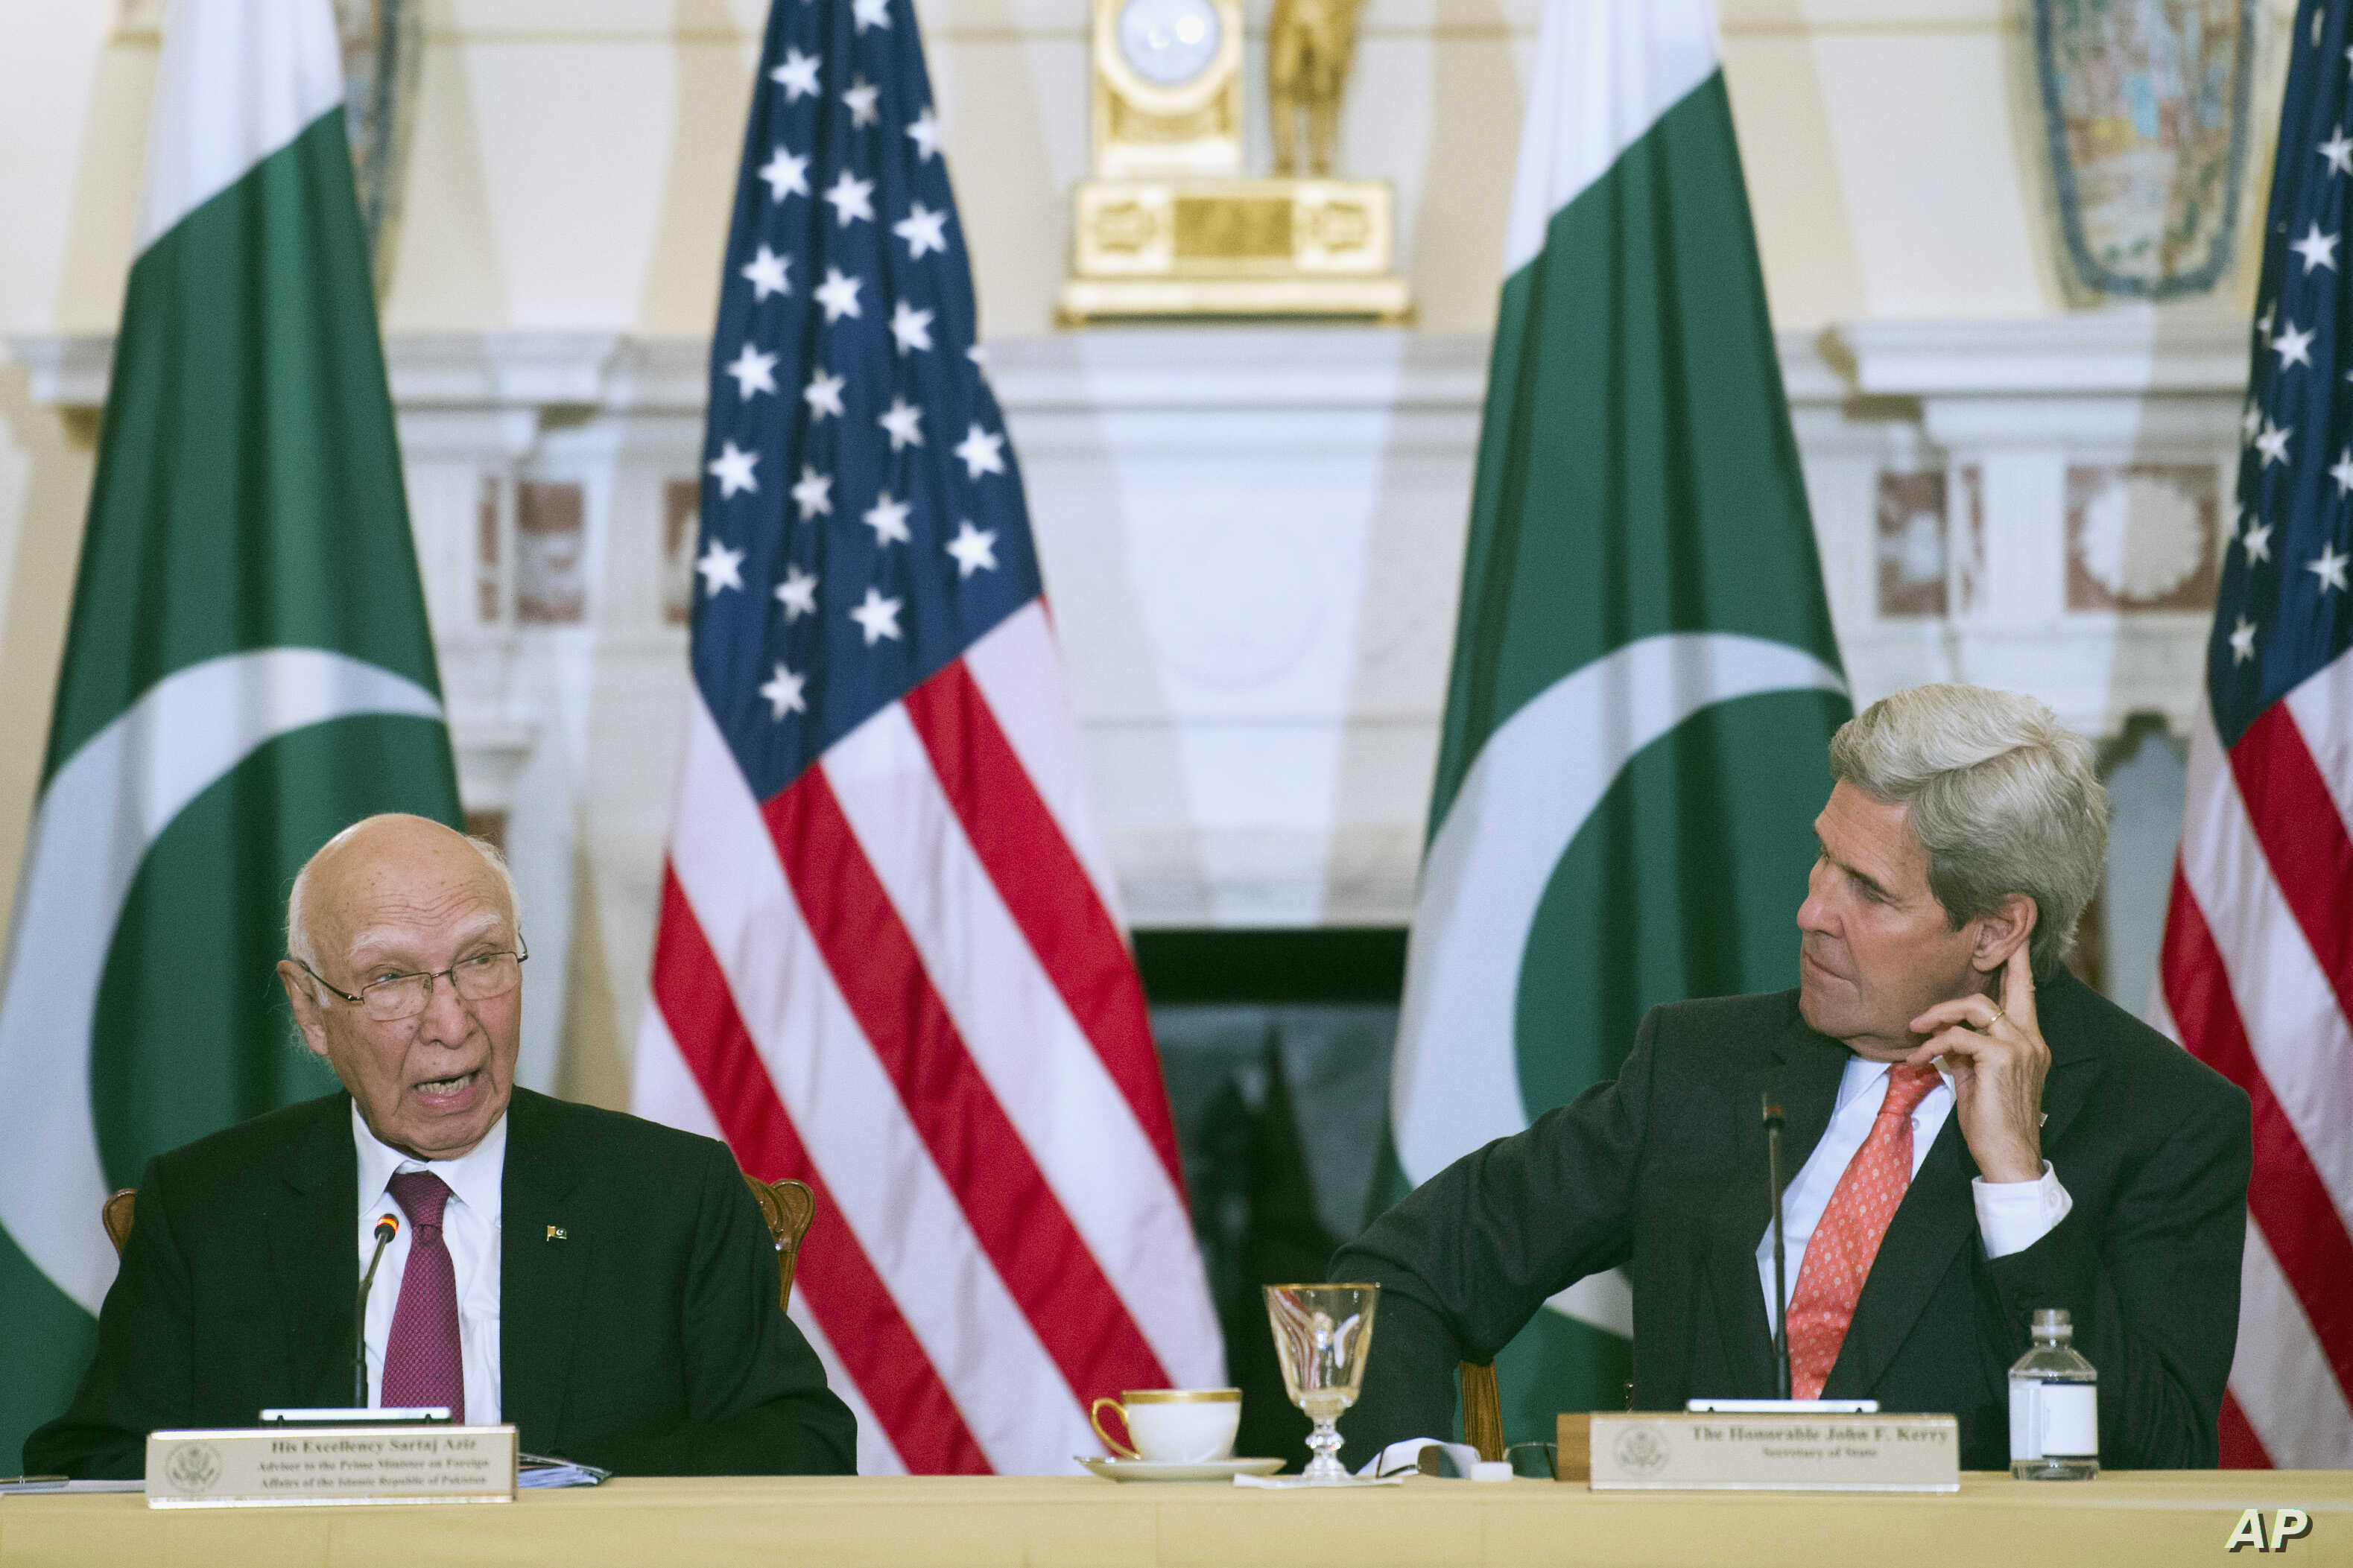 Secretary of State John Kerry and Pakistan Foreign Affairs Adviser Sartaj Aziz, participate in the U.S.-Pakistan Strategic Dialogue meeting at the State Department  in Washington, Feb. 29, 2016.